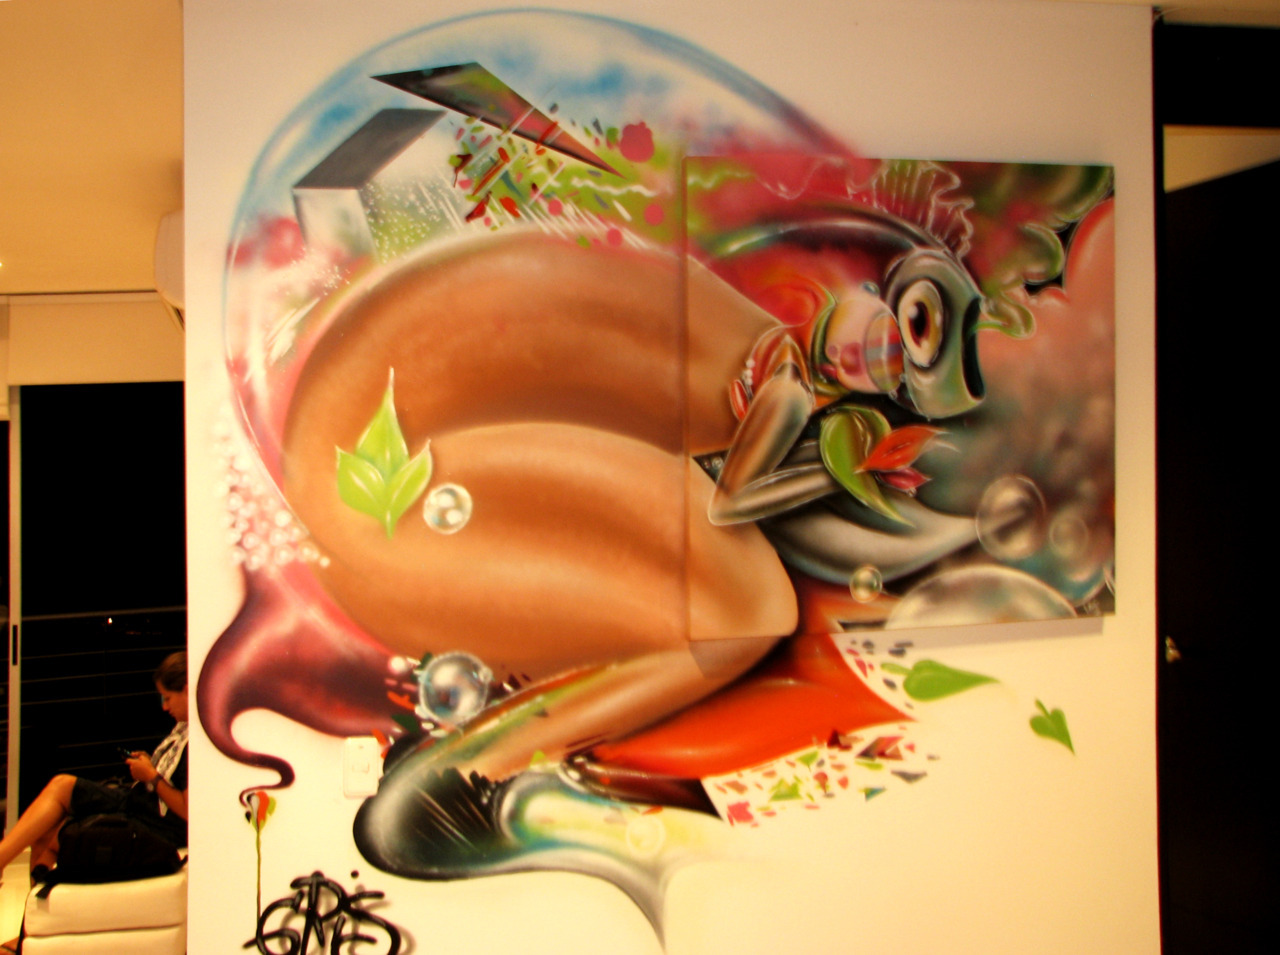 BIRD/ FISH - PAJARO/PEZ   & SUEÑO EROTICO / EROTIC DREAM  ACRILYC AND SPRAY PAINT ON CANVAS